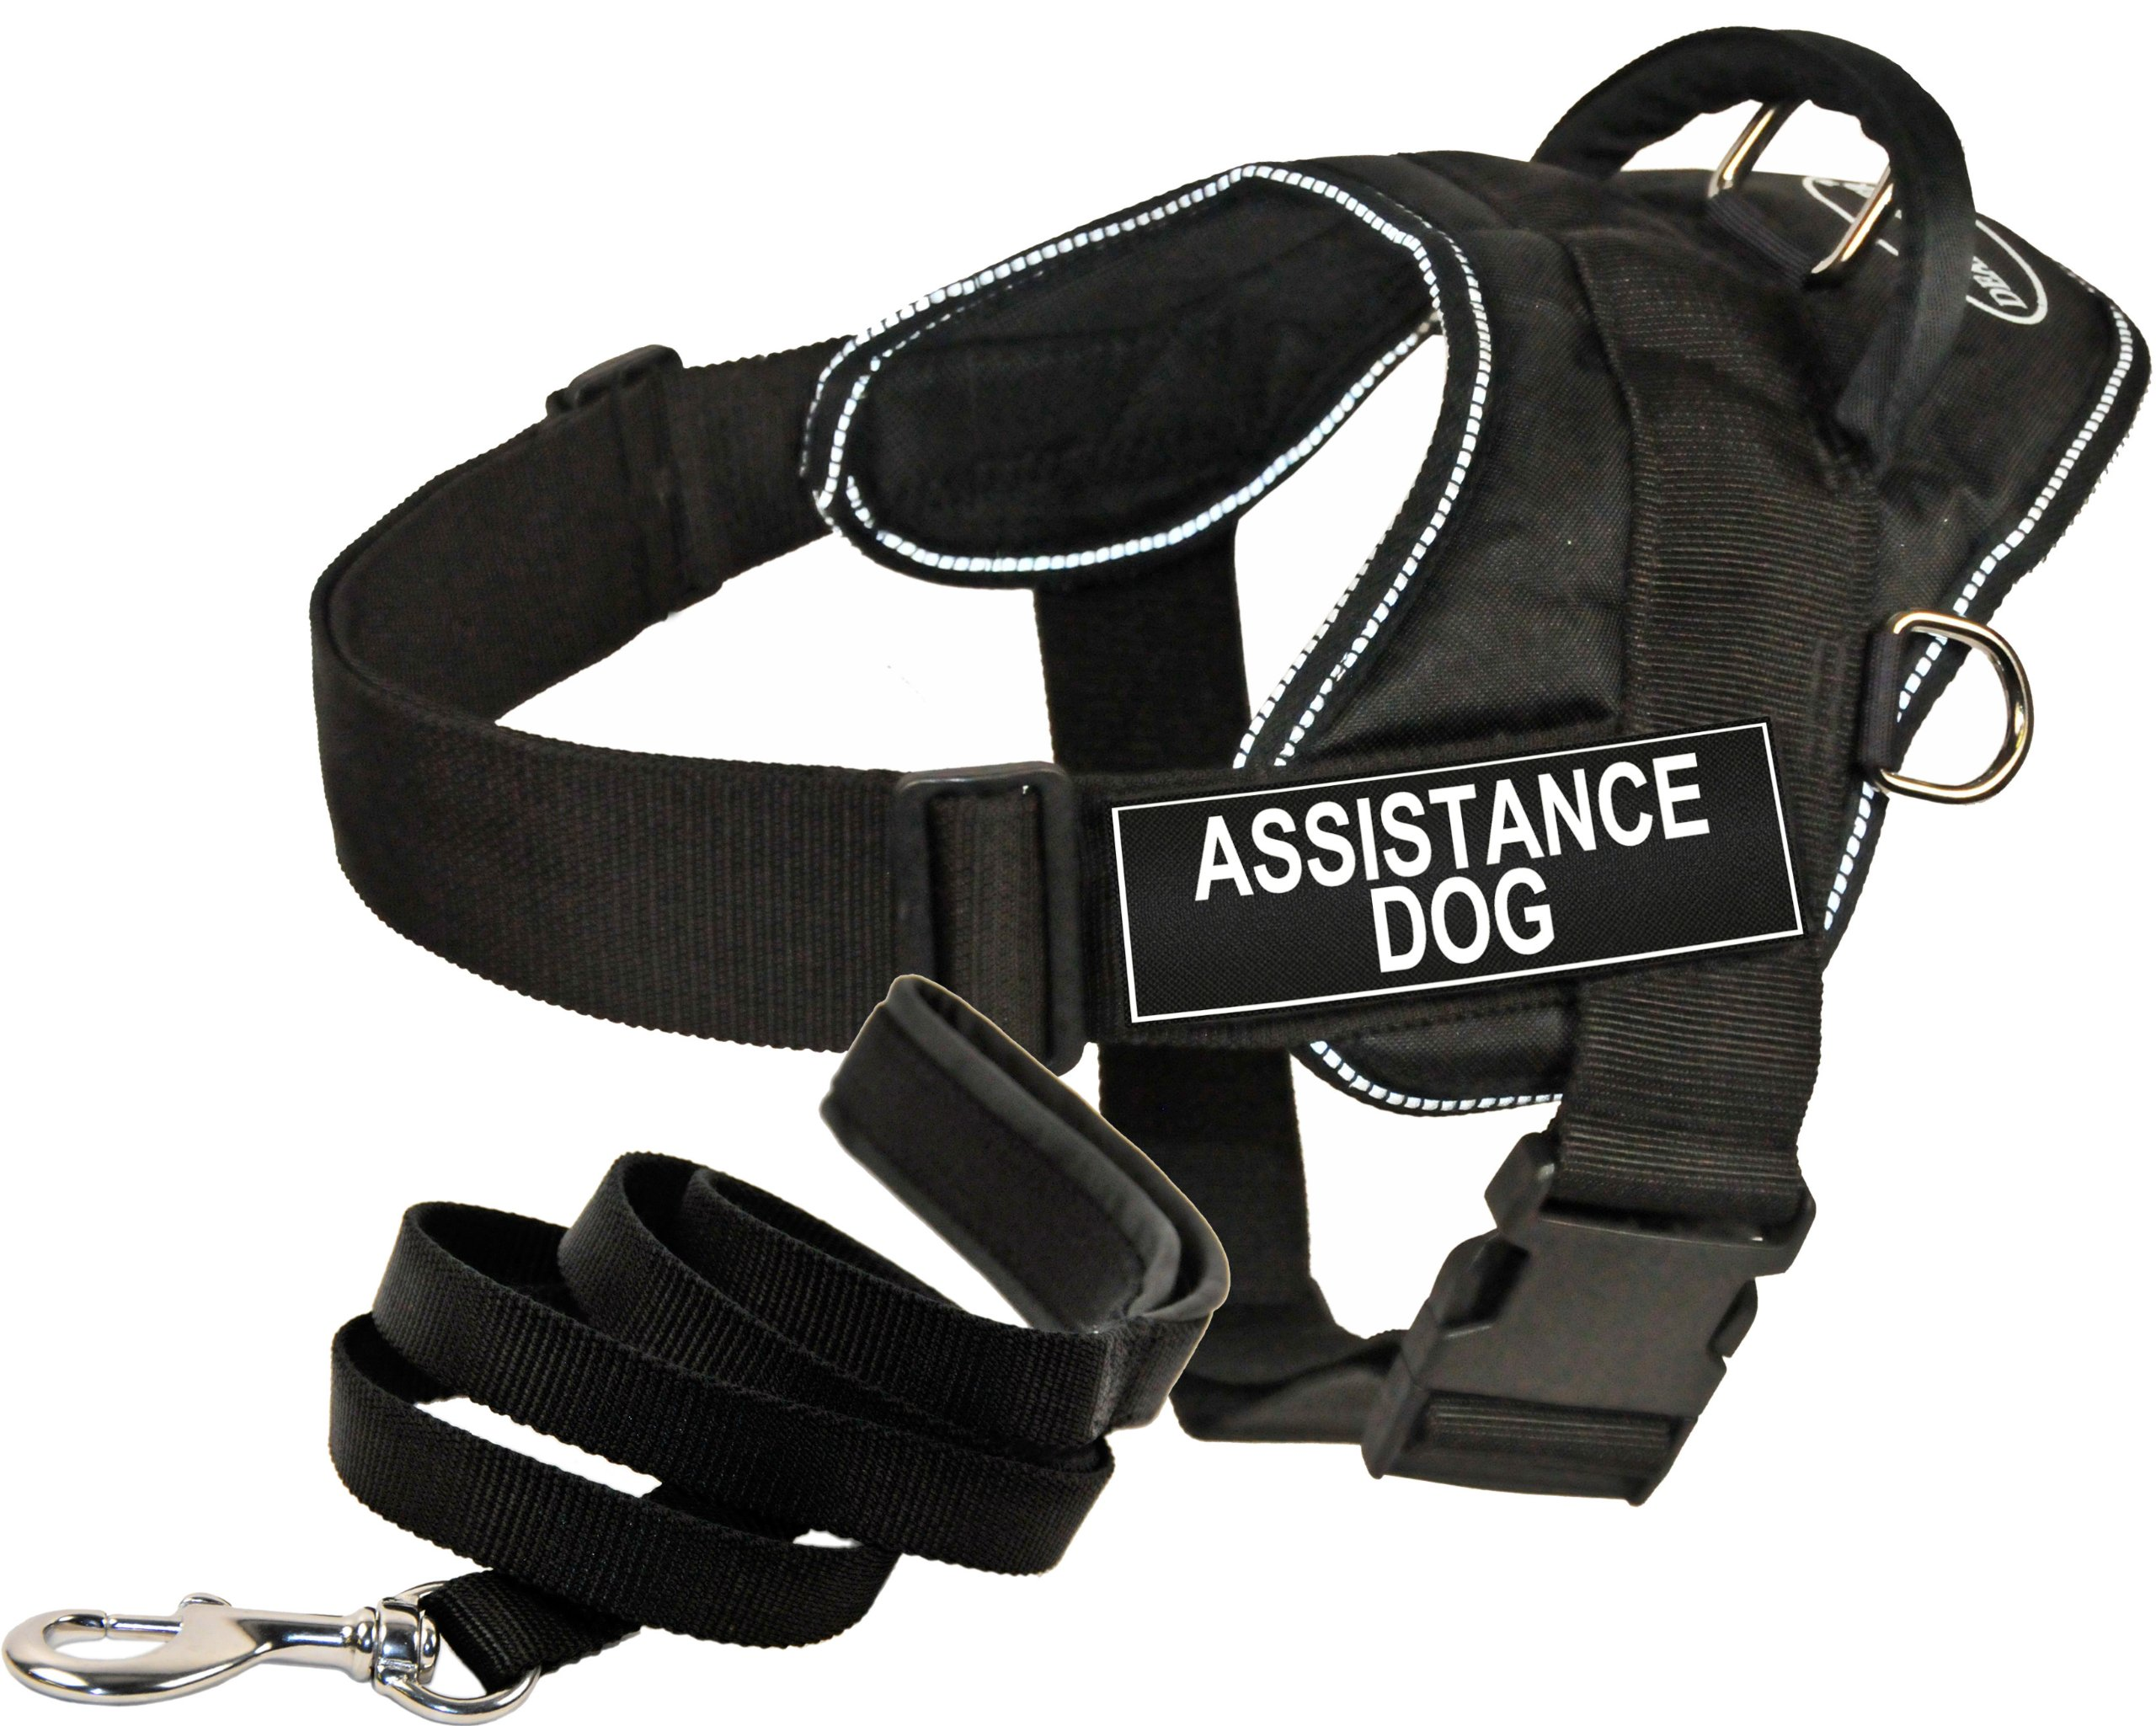 Dean & Tyler DT Fun Works Harness 6-Feet Padded Puppy Leash, Assistance Dog, X-Large, Black